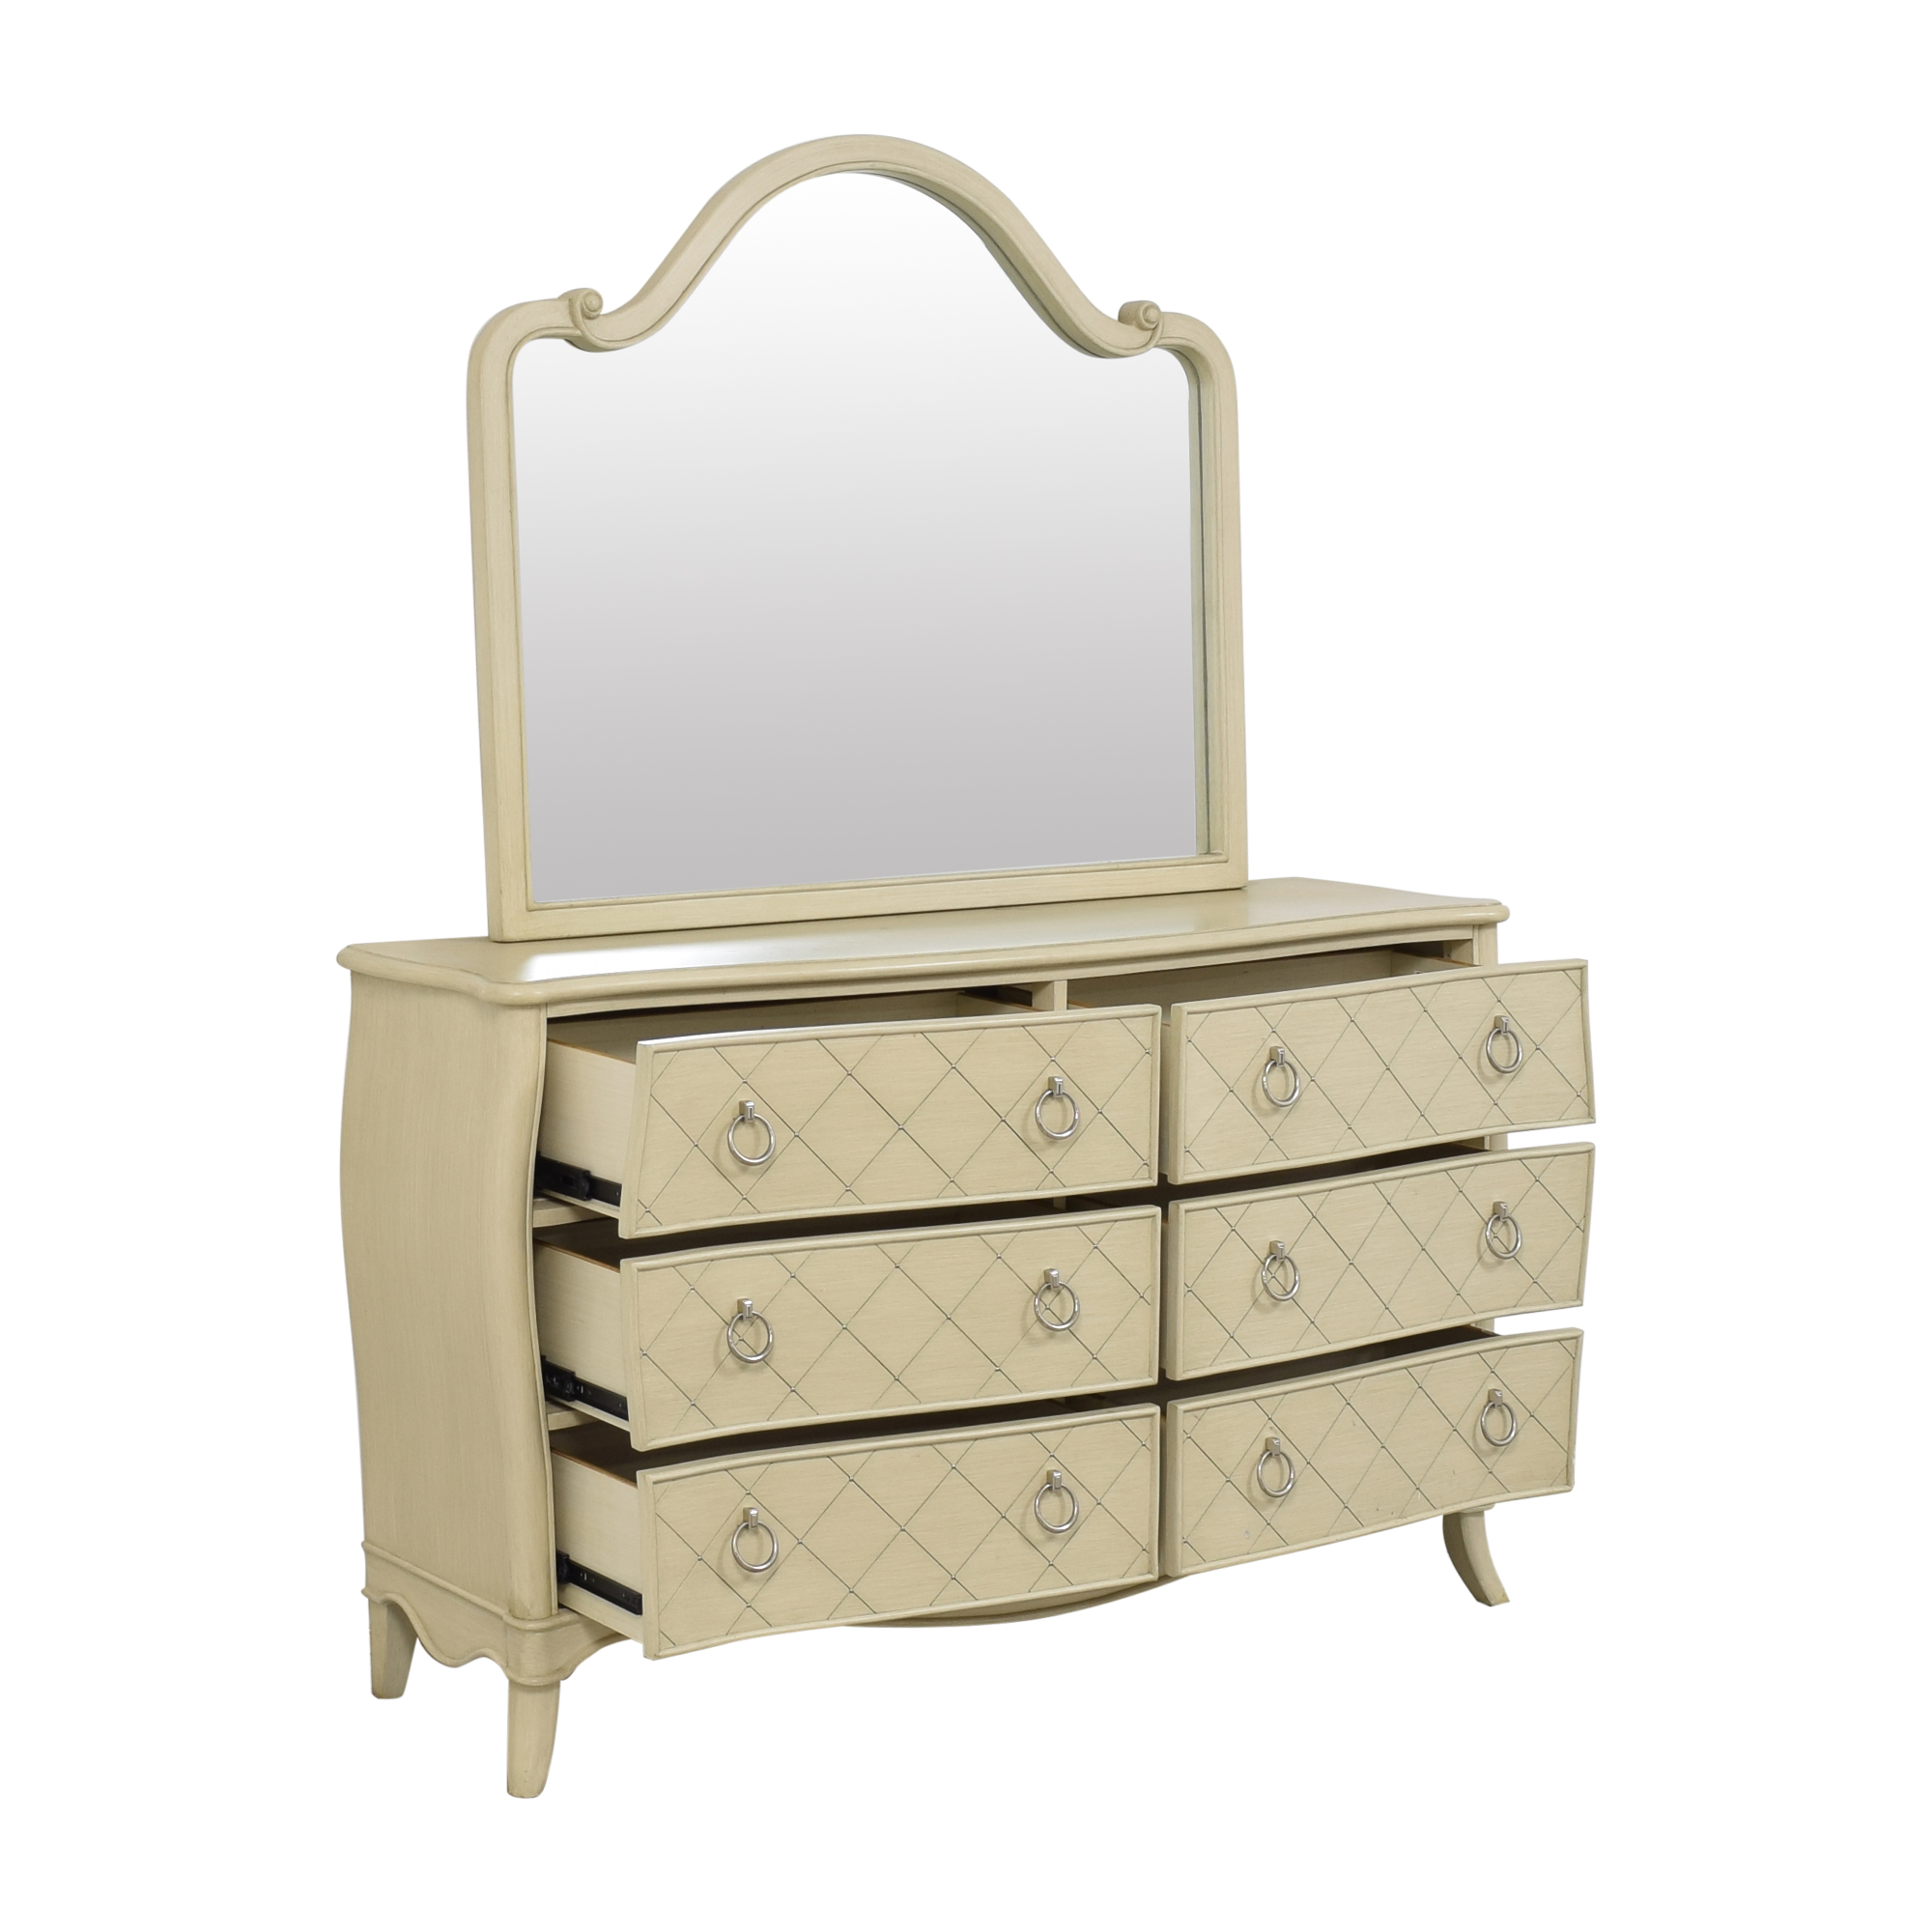 Raymour & Flanigan Raymour & Flanigan Dresser with Mirror for sale